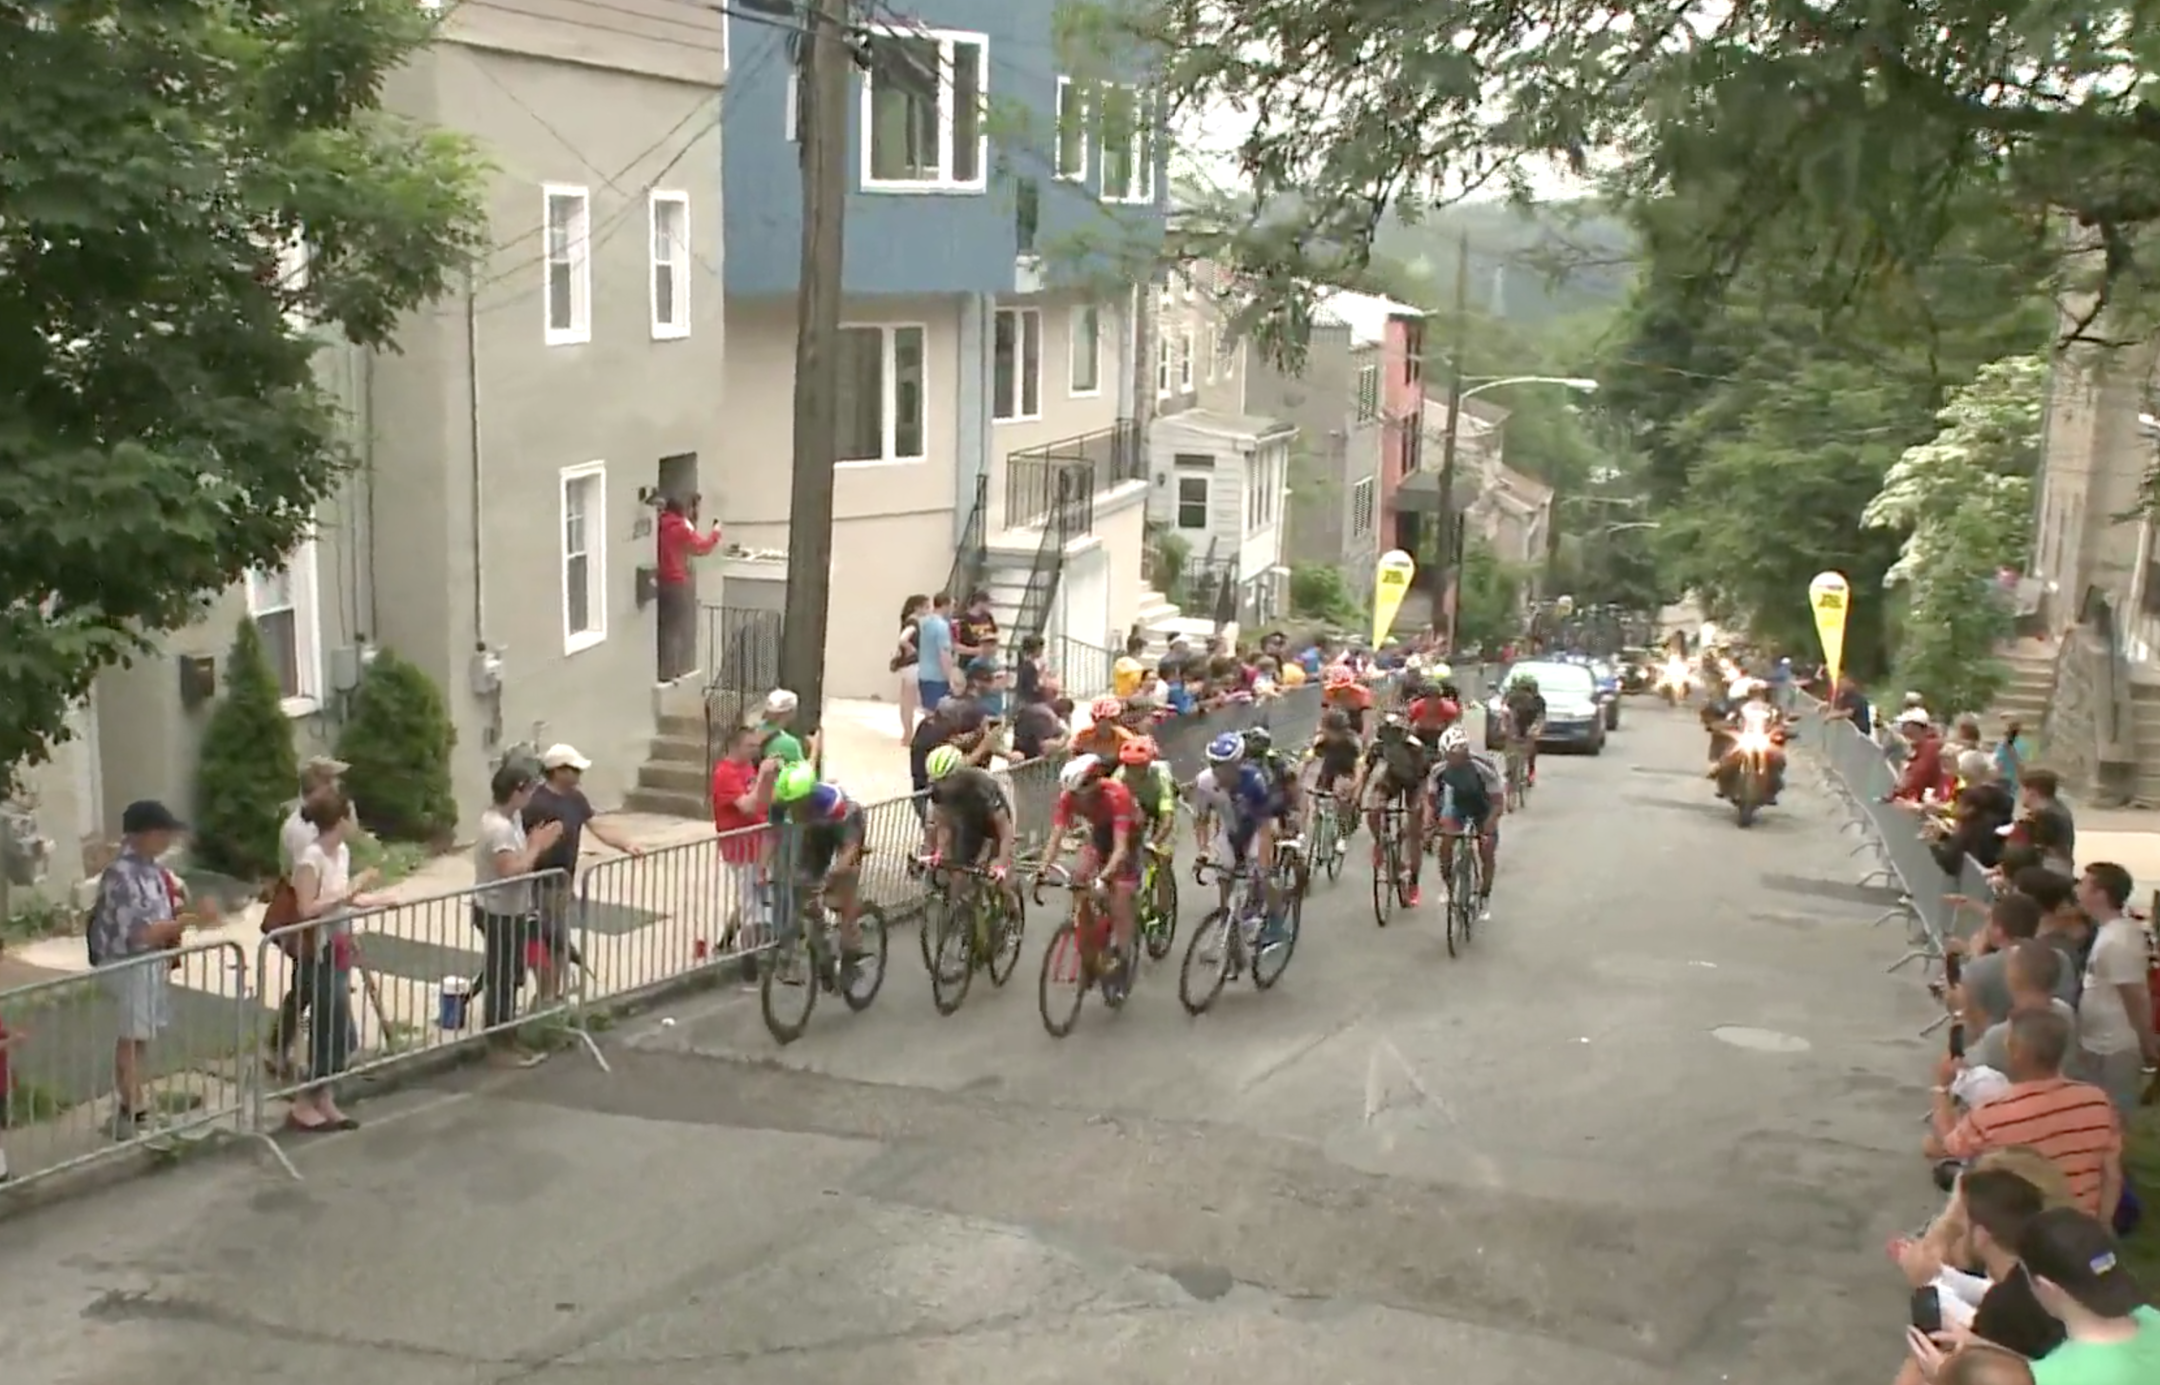 This year's event saw live streaming that captured excellent footage. Here are the lead riders going up the Manyunk Wall.